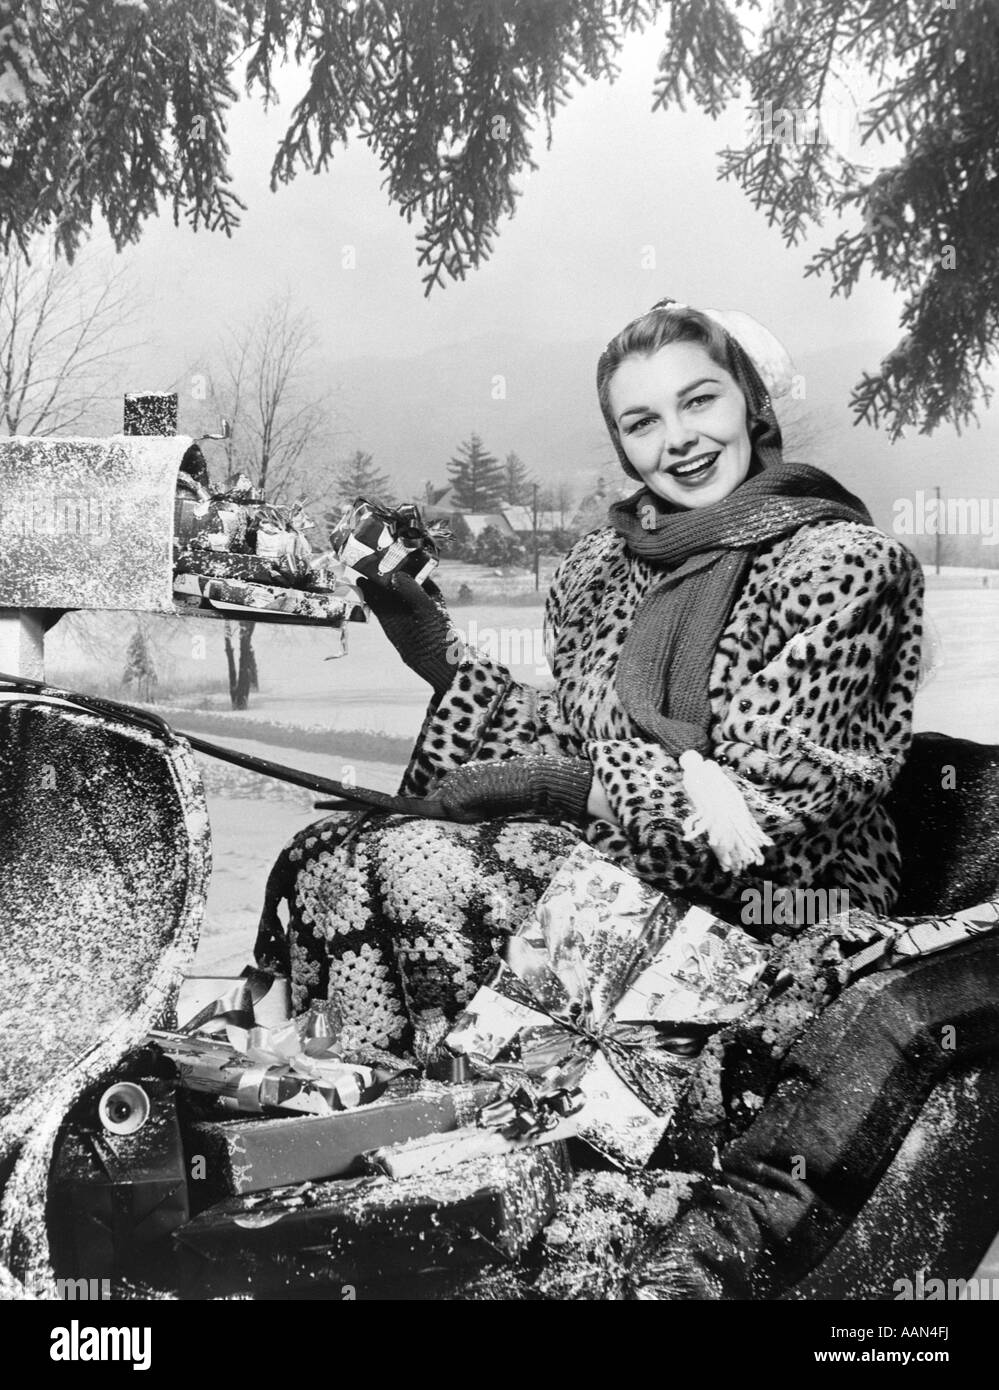 1950 SMILING WOMAN LOOKING AT CAMERA ÉQUITATION traîneau en peau de léopard porte manteau de fourrure Photo Stock